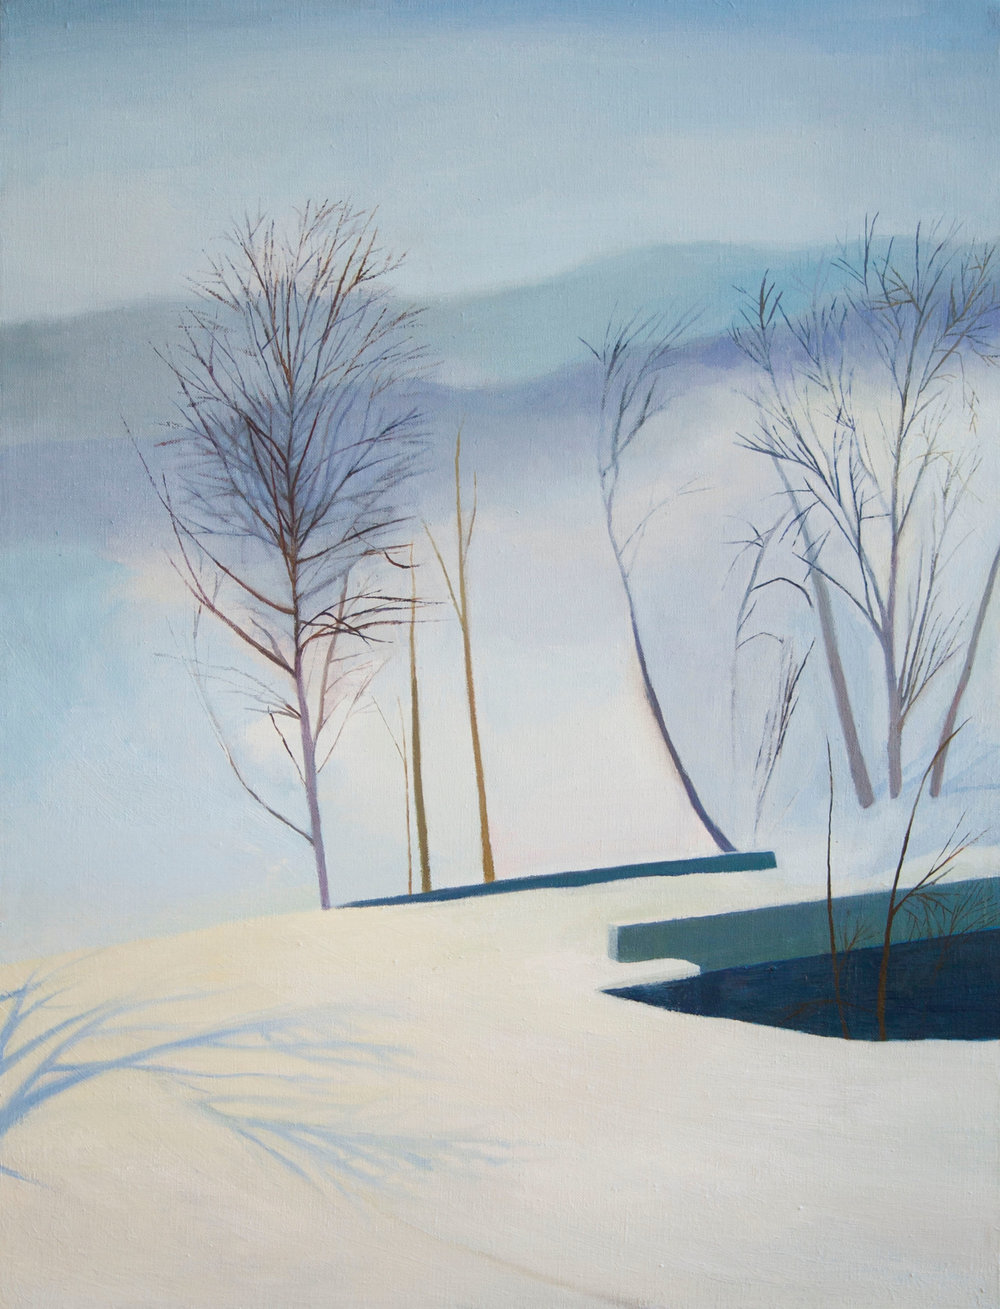 Snow Scene, Oil on linen, 24 x 18 inches, 2015